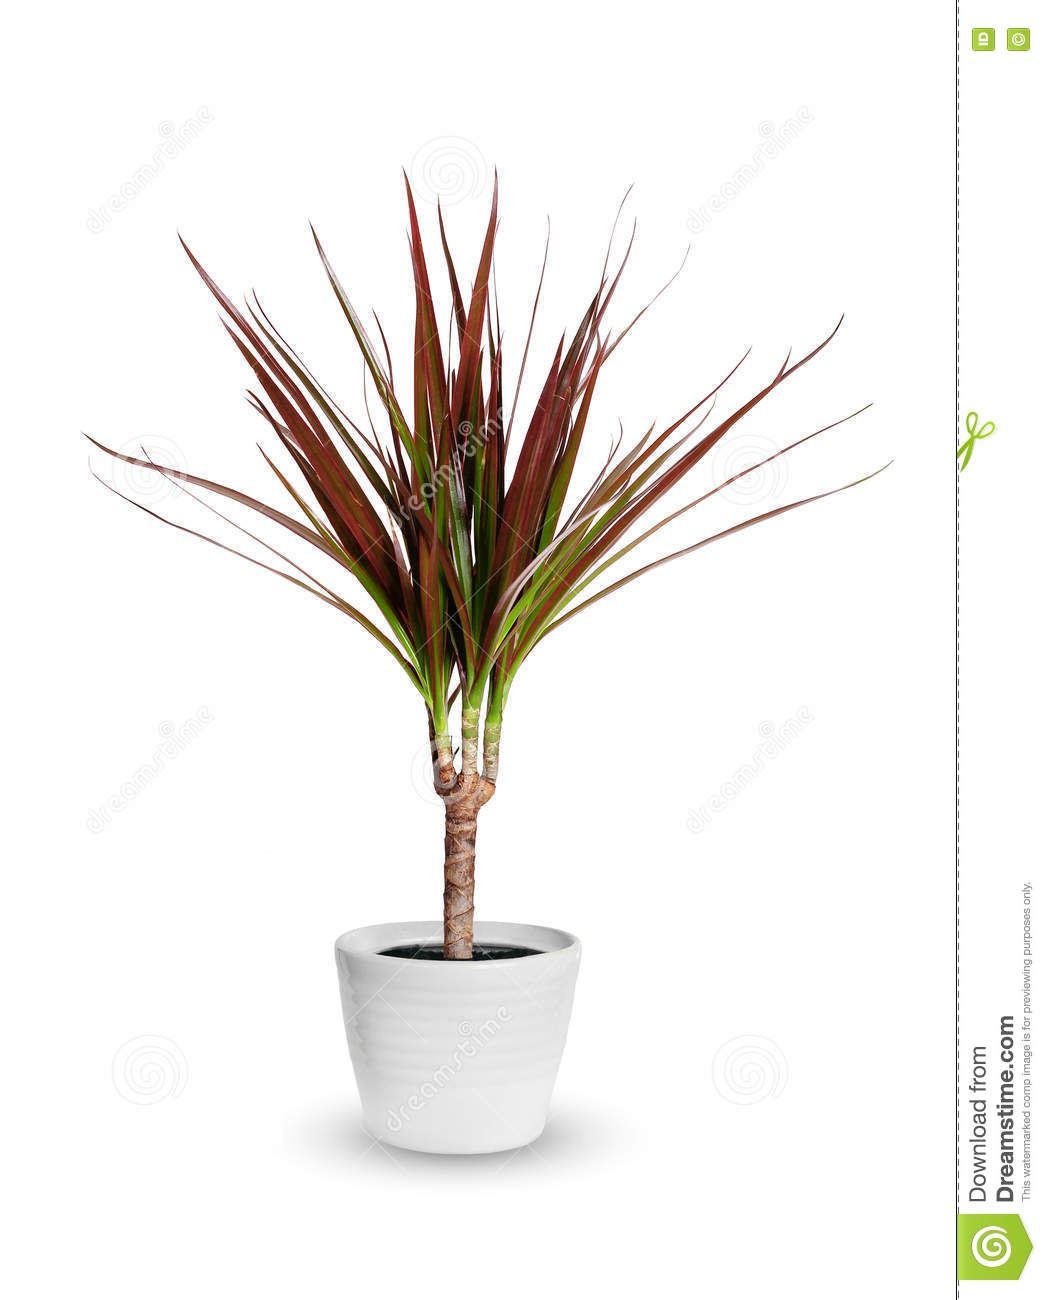 Houseplant - Dracaena Marginata A Potted Plant Isolated Over White on cornstalk plant, mass cane plant, artificial palm trees plant, tall marginata plant, marginata plant poisonous, marginata cane plant, shrimp plant, cigarette plant, pruning marginata plant, alocasia plant, fica plant, dracaena plant, identify palm plant, eucalyptus plant, gawe aspidistra plant, florida beauty plant, d. marginata plant, cactus tree plant, century tree plant,